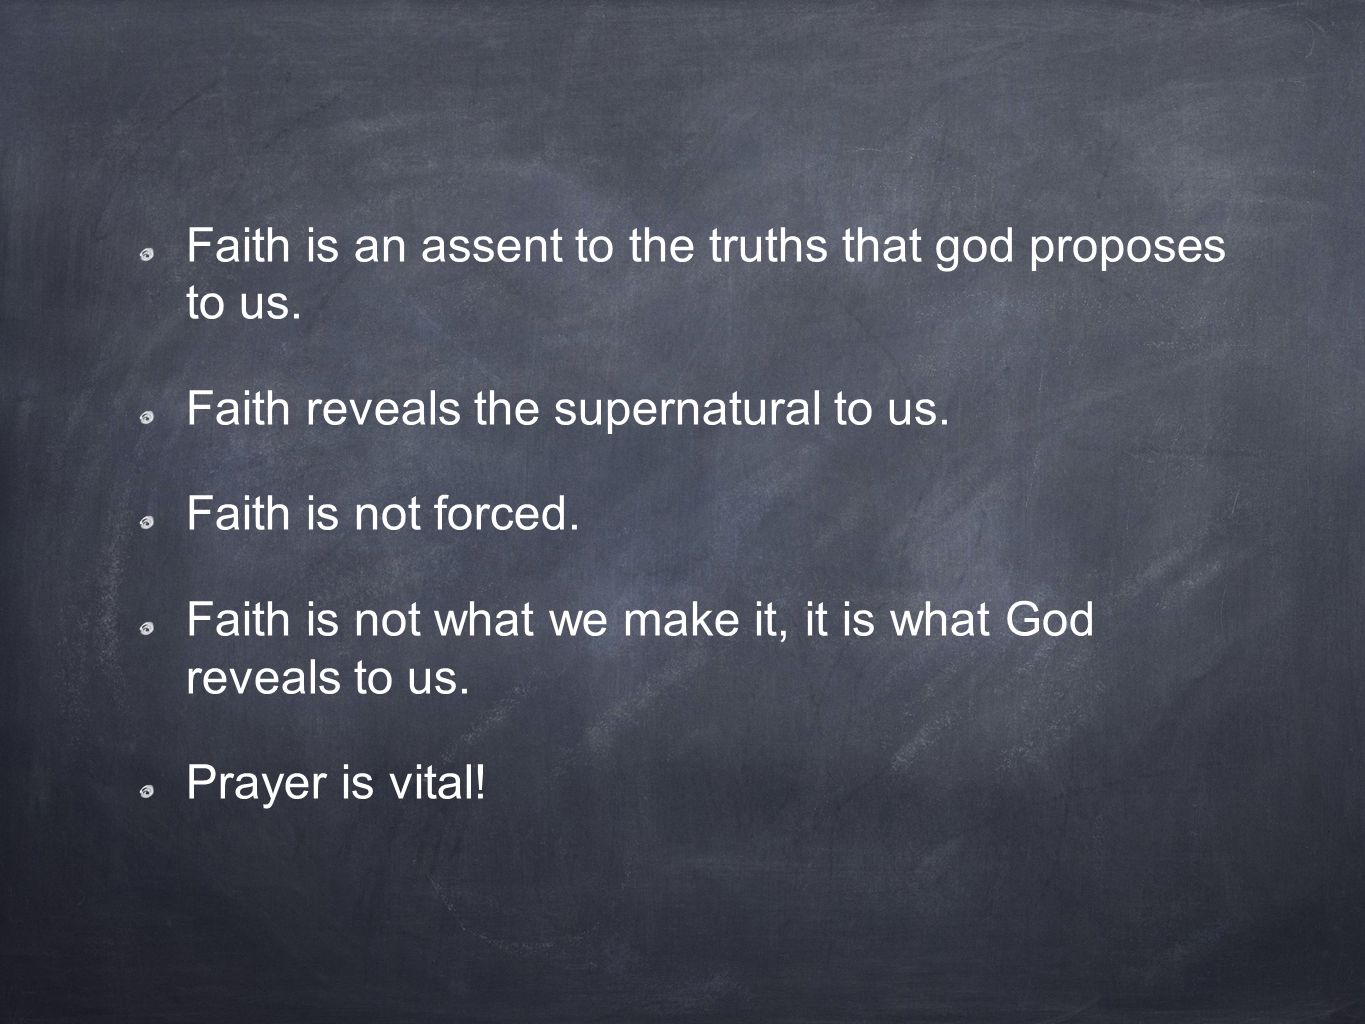 Faith is an assent to the truths that god proposes to us.